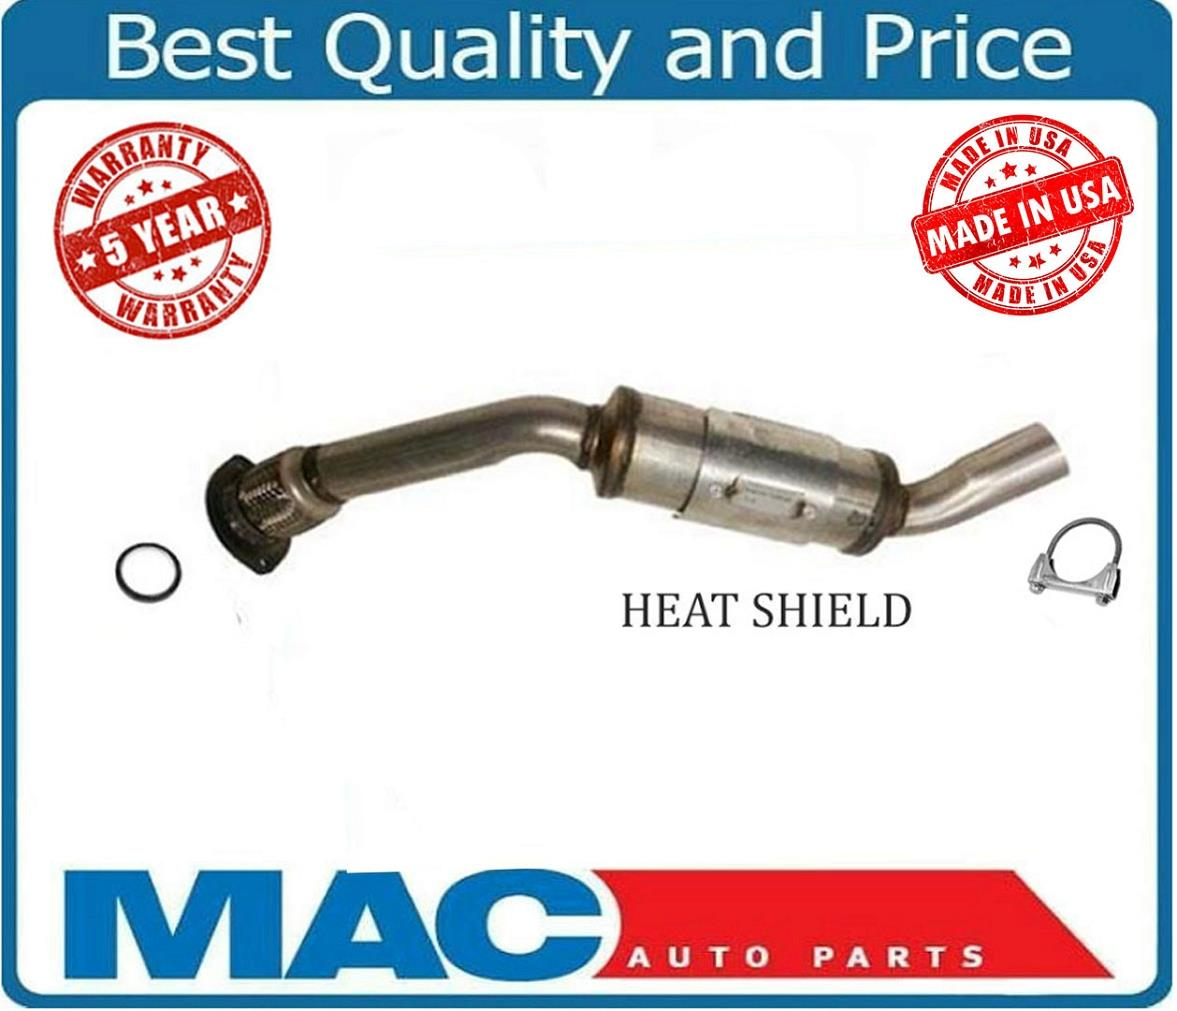 hight resolution of details about for ford taurus mercury sable 3 0l rear catalytic converter ck info below